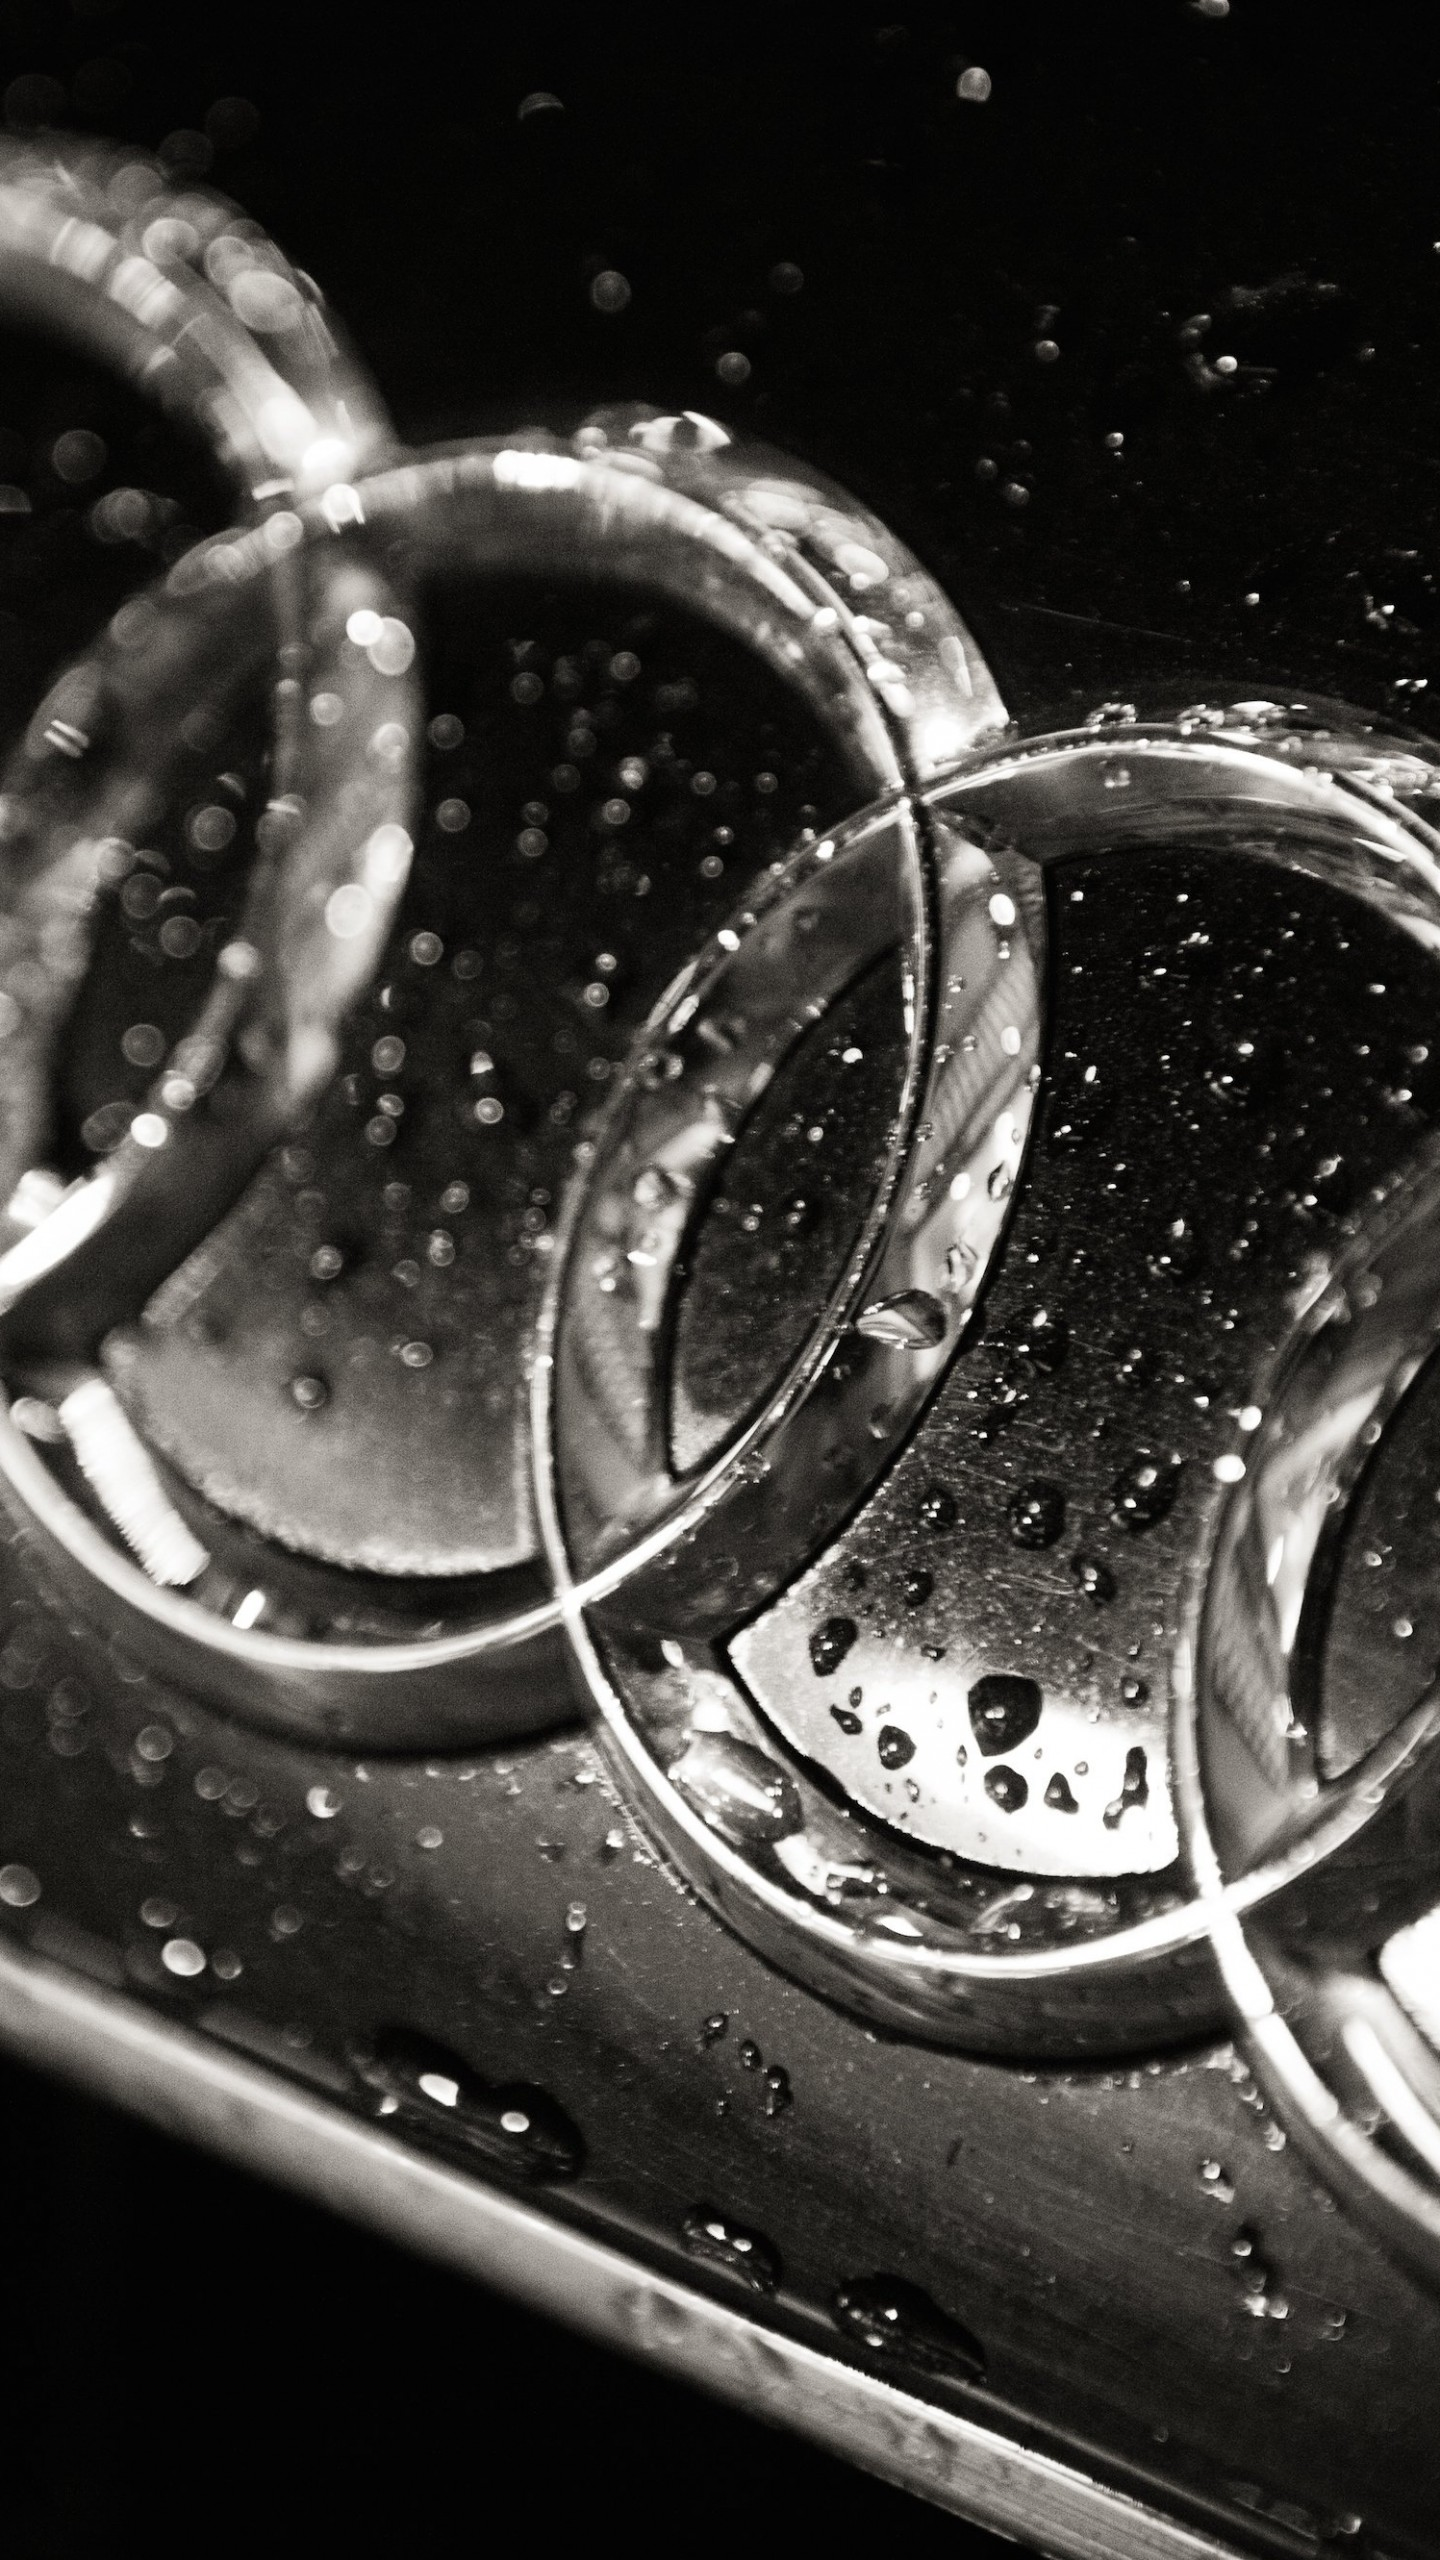 Audi Logo in Black & White Wallpaper for SAMSUNG Galaxy S6